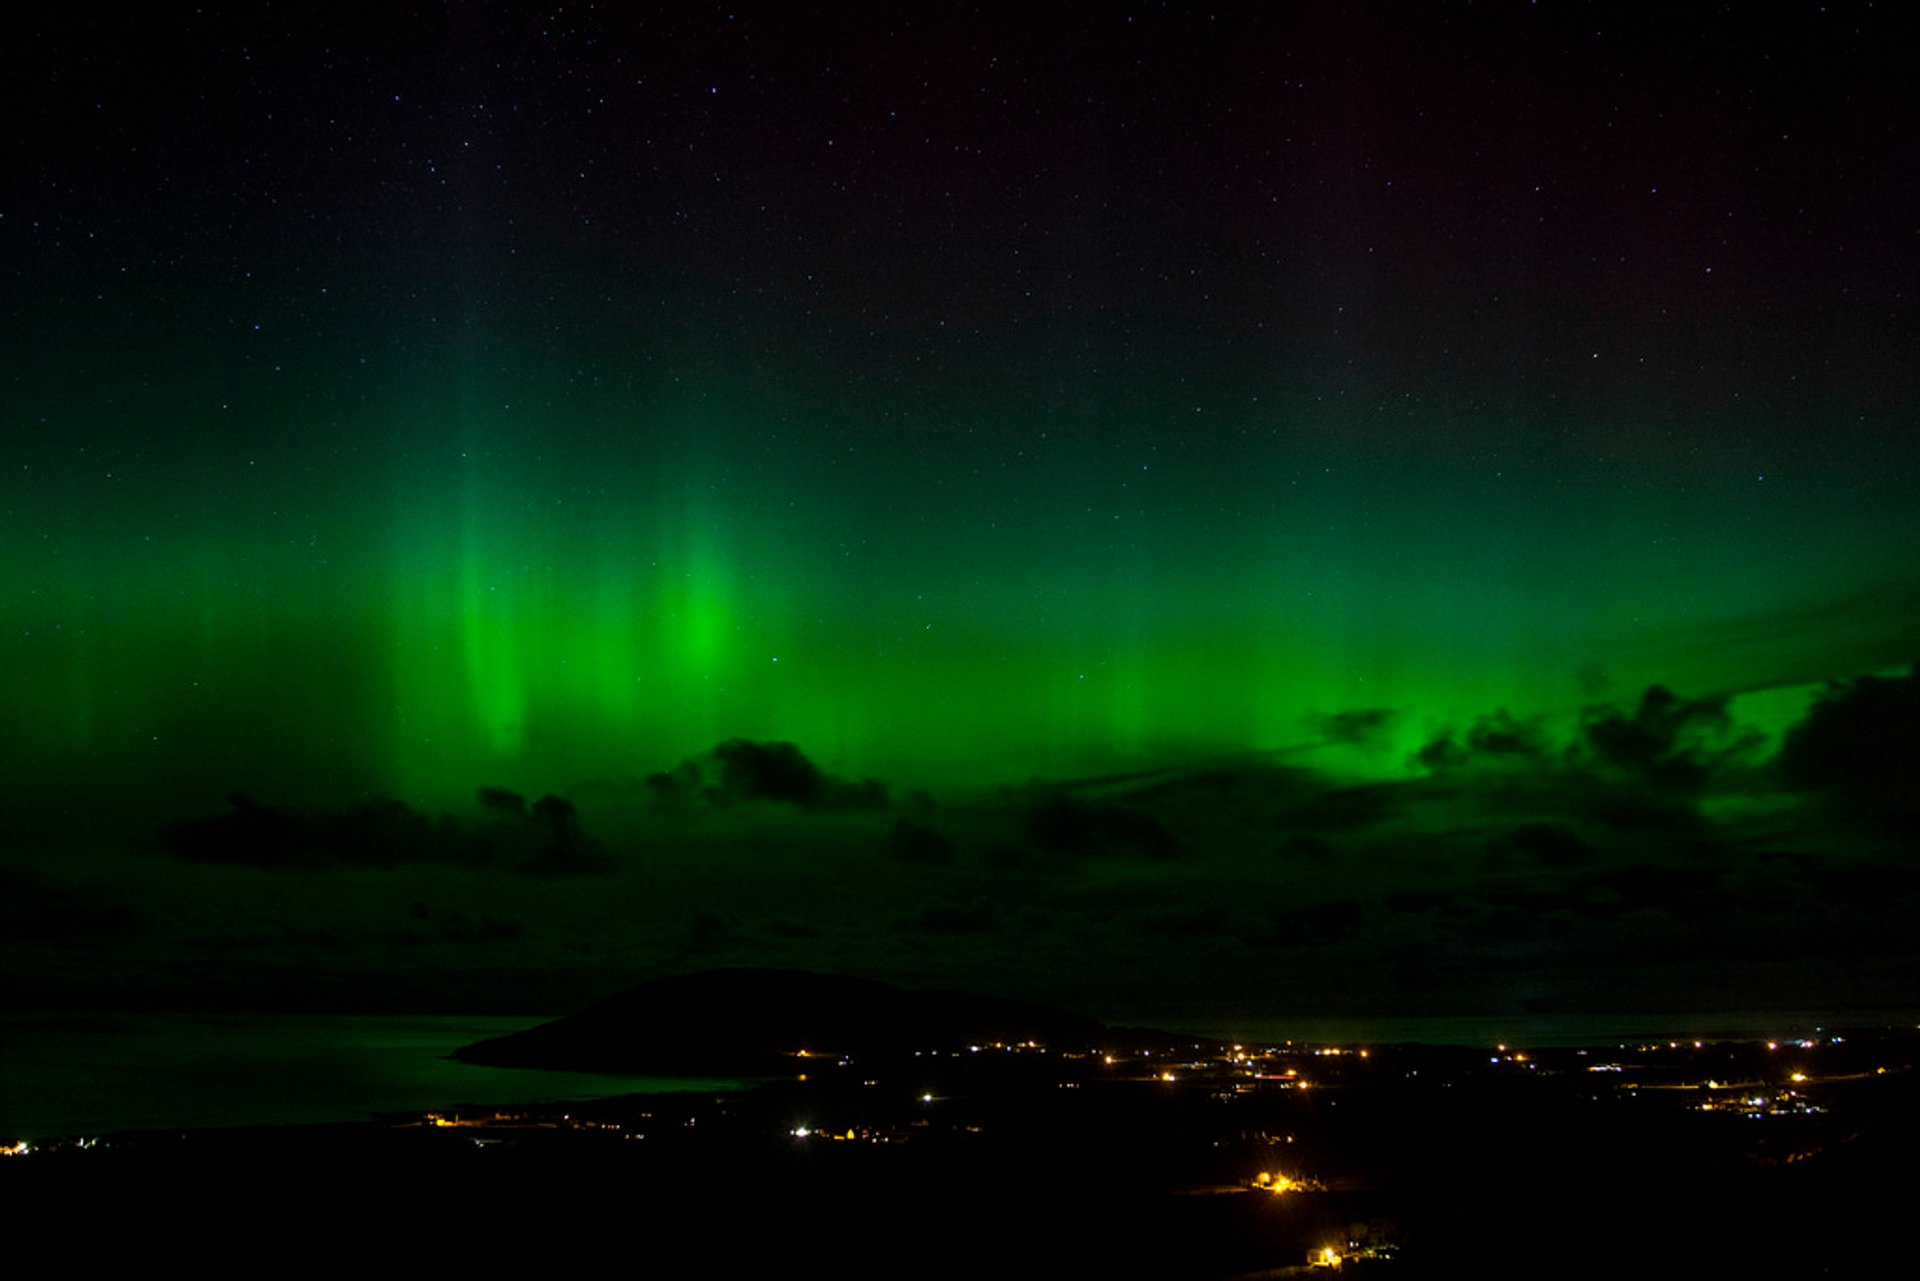 Fading away northern lights over Urris valley to the west of the parish of Clonmany, Co Donegal, Ireland 2020